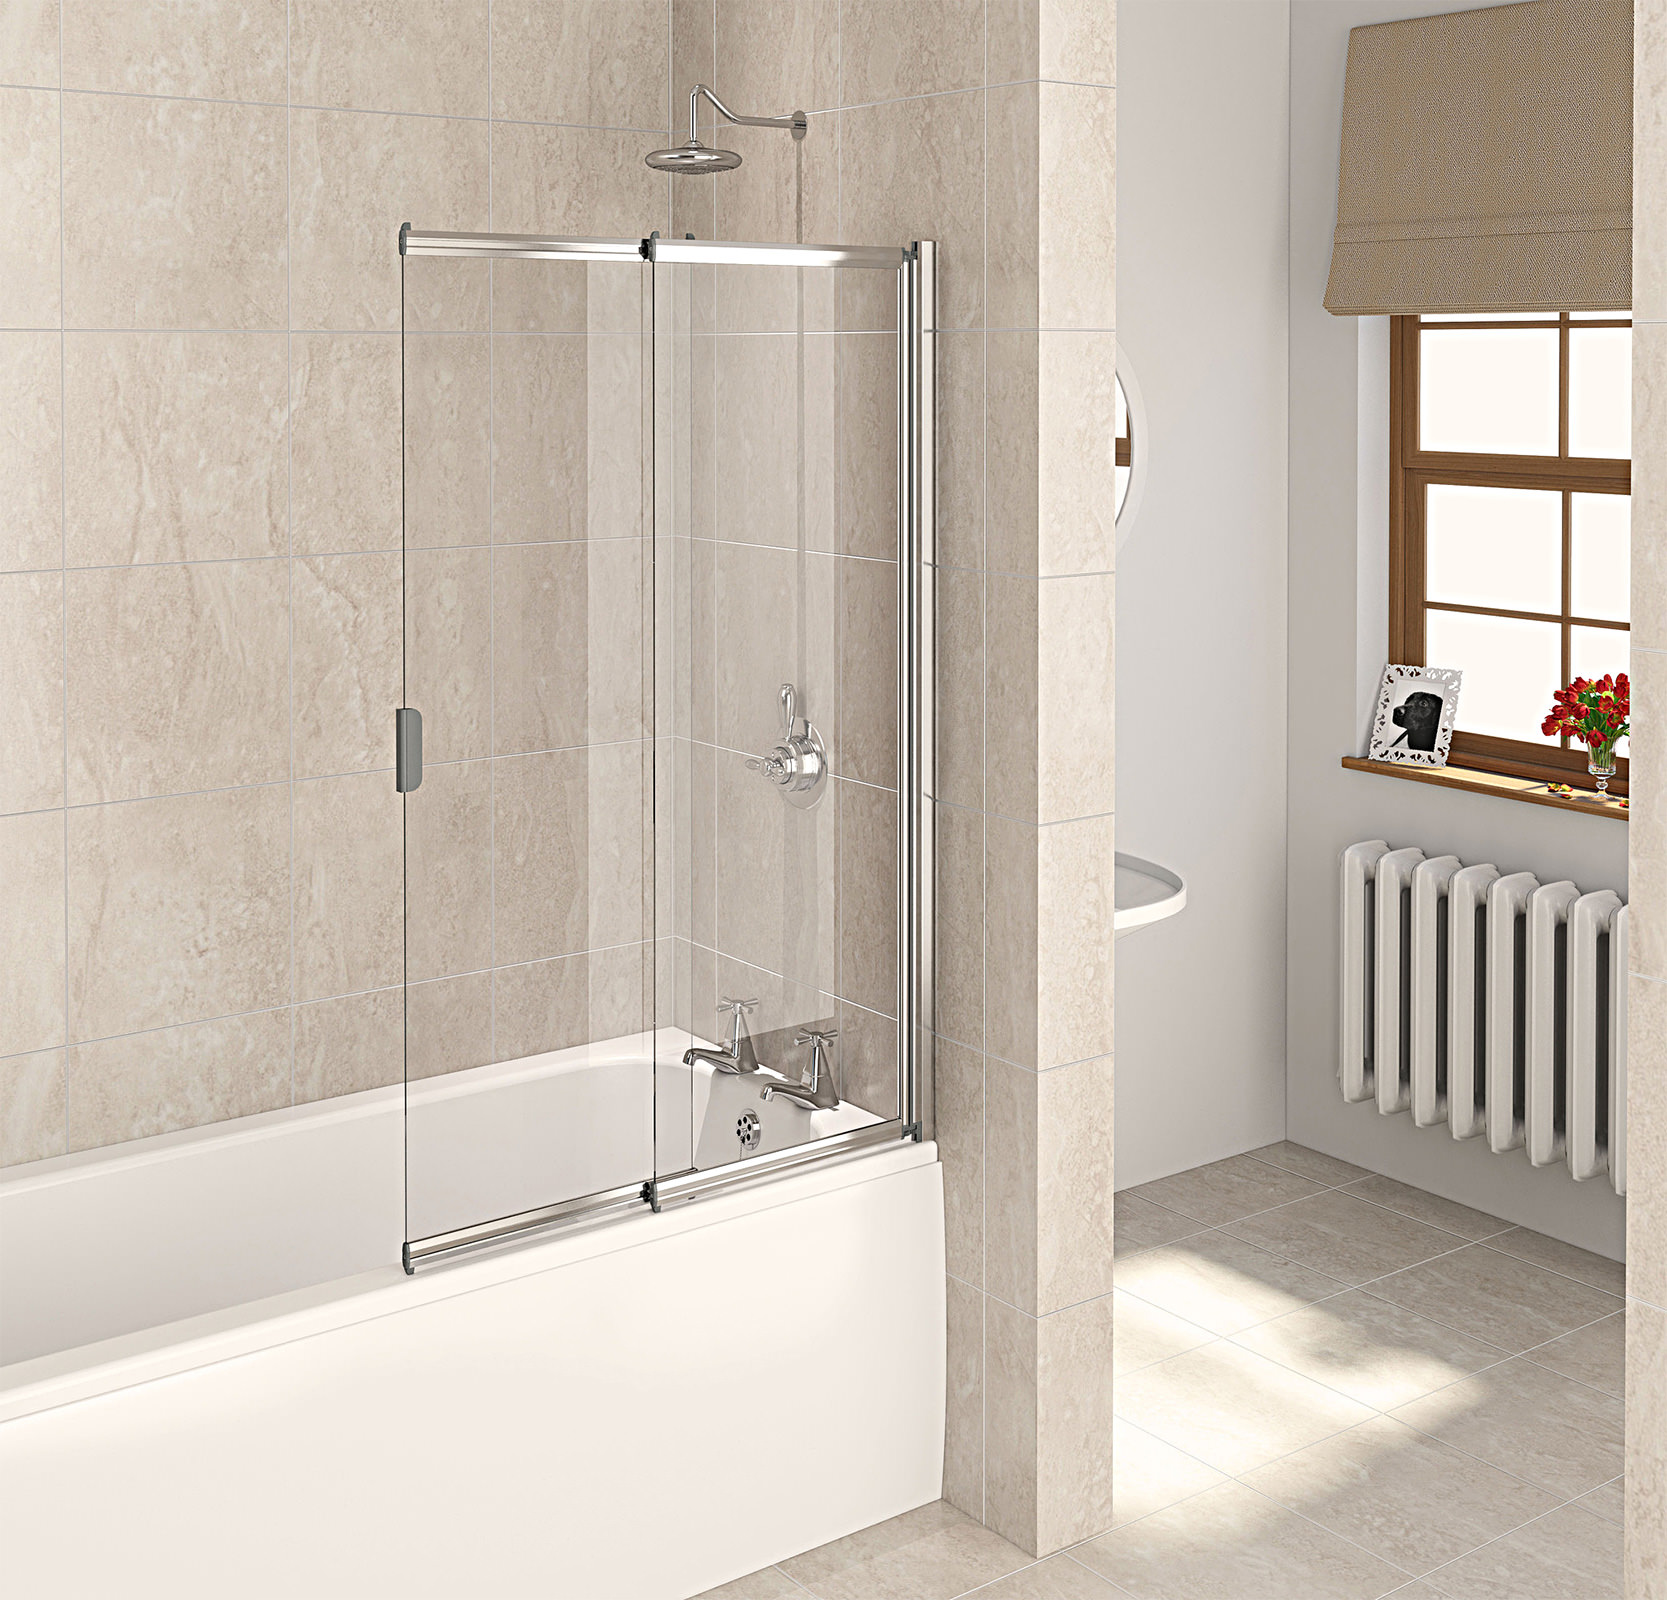 Aqualux Aqua 4 Polished Silver 2 Panel Slider Bath Screen